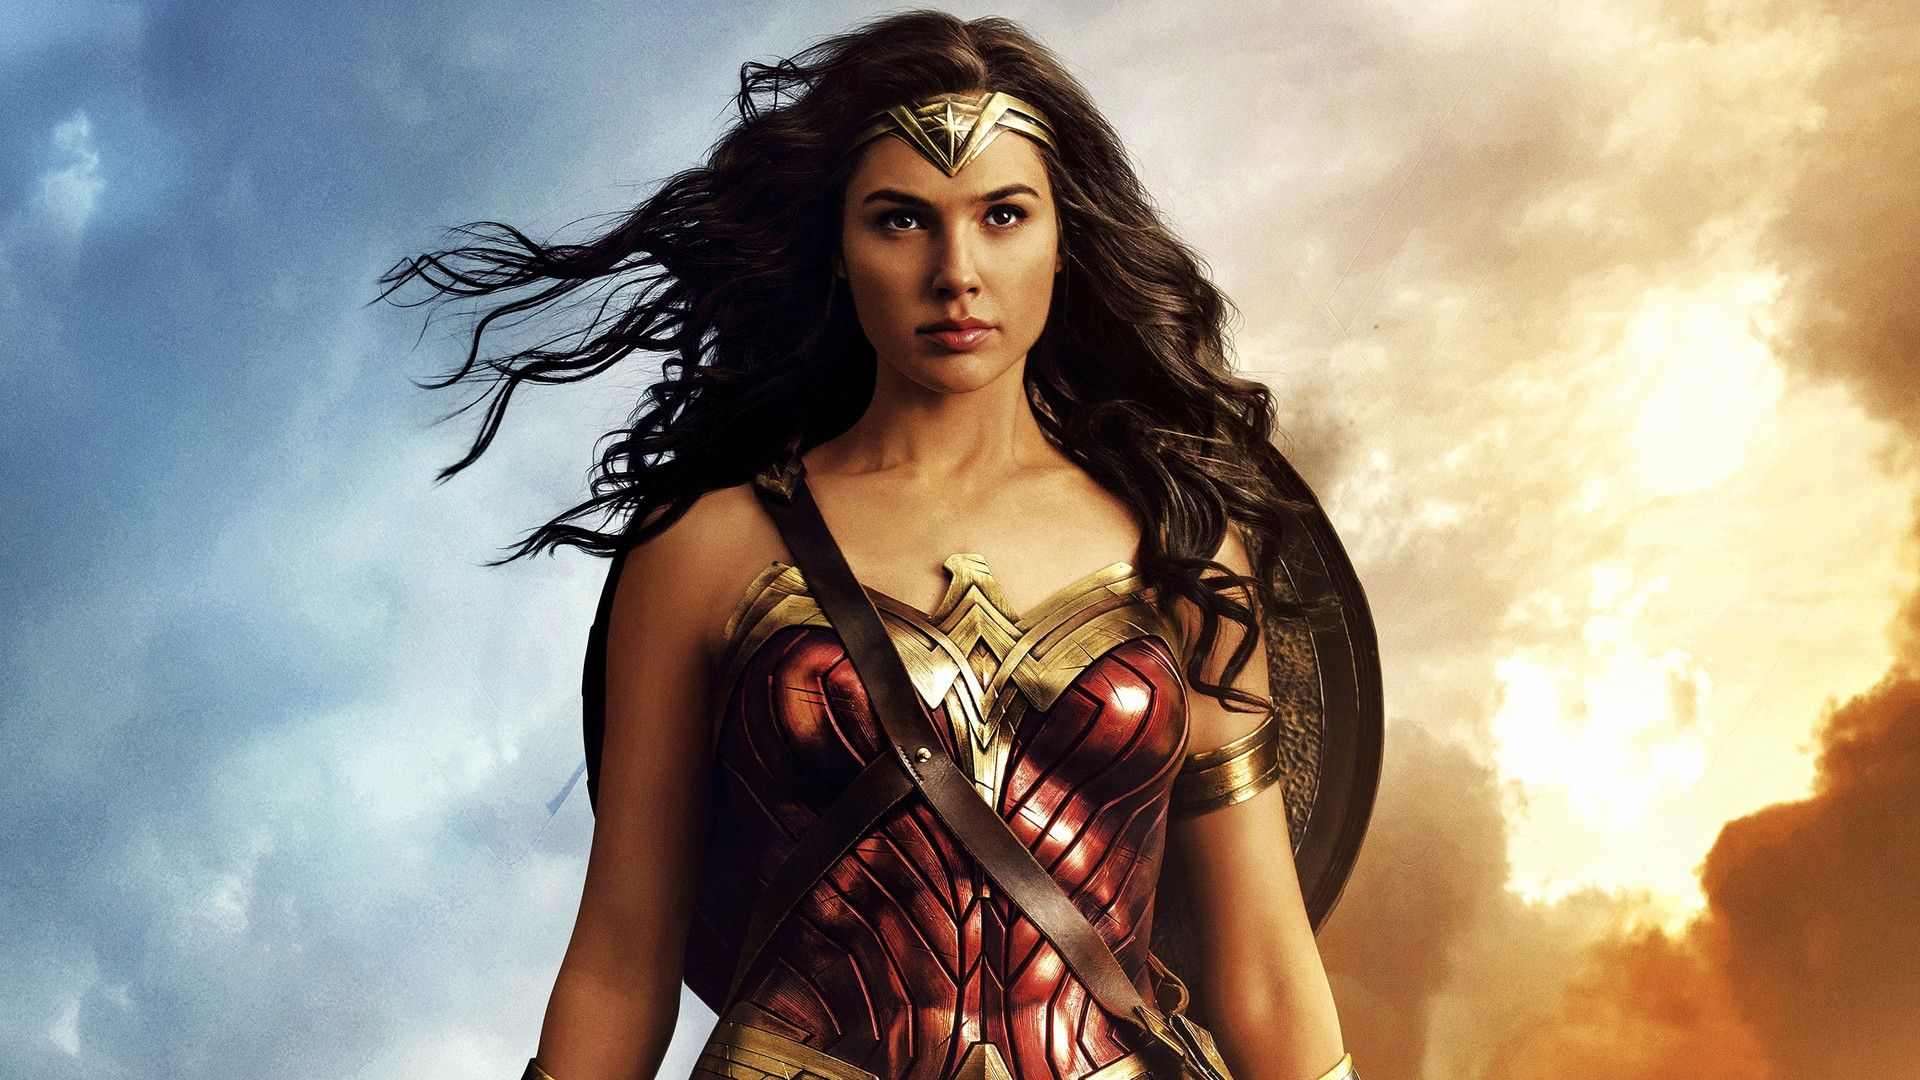 Wonder Women Gal Gadot Wallpapers Top Free Wonder Women Gal